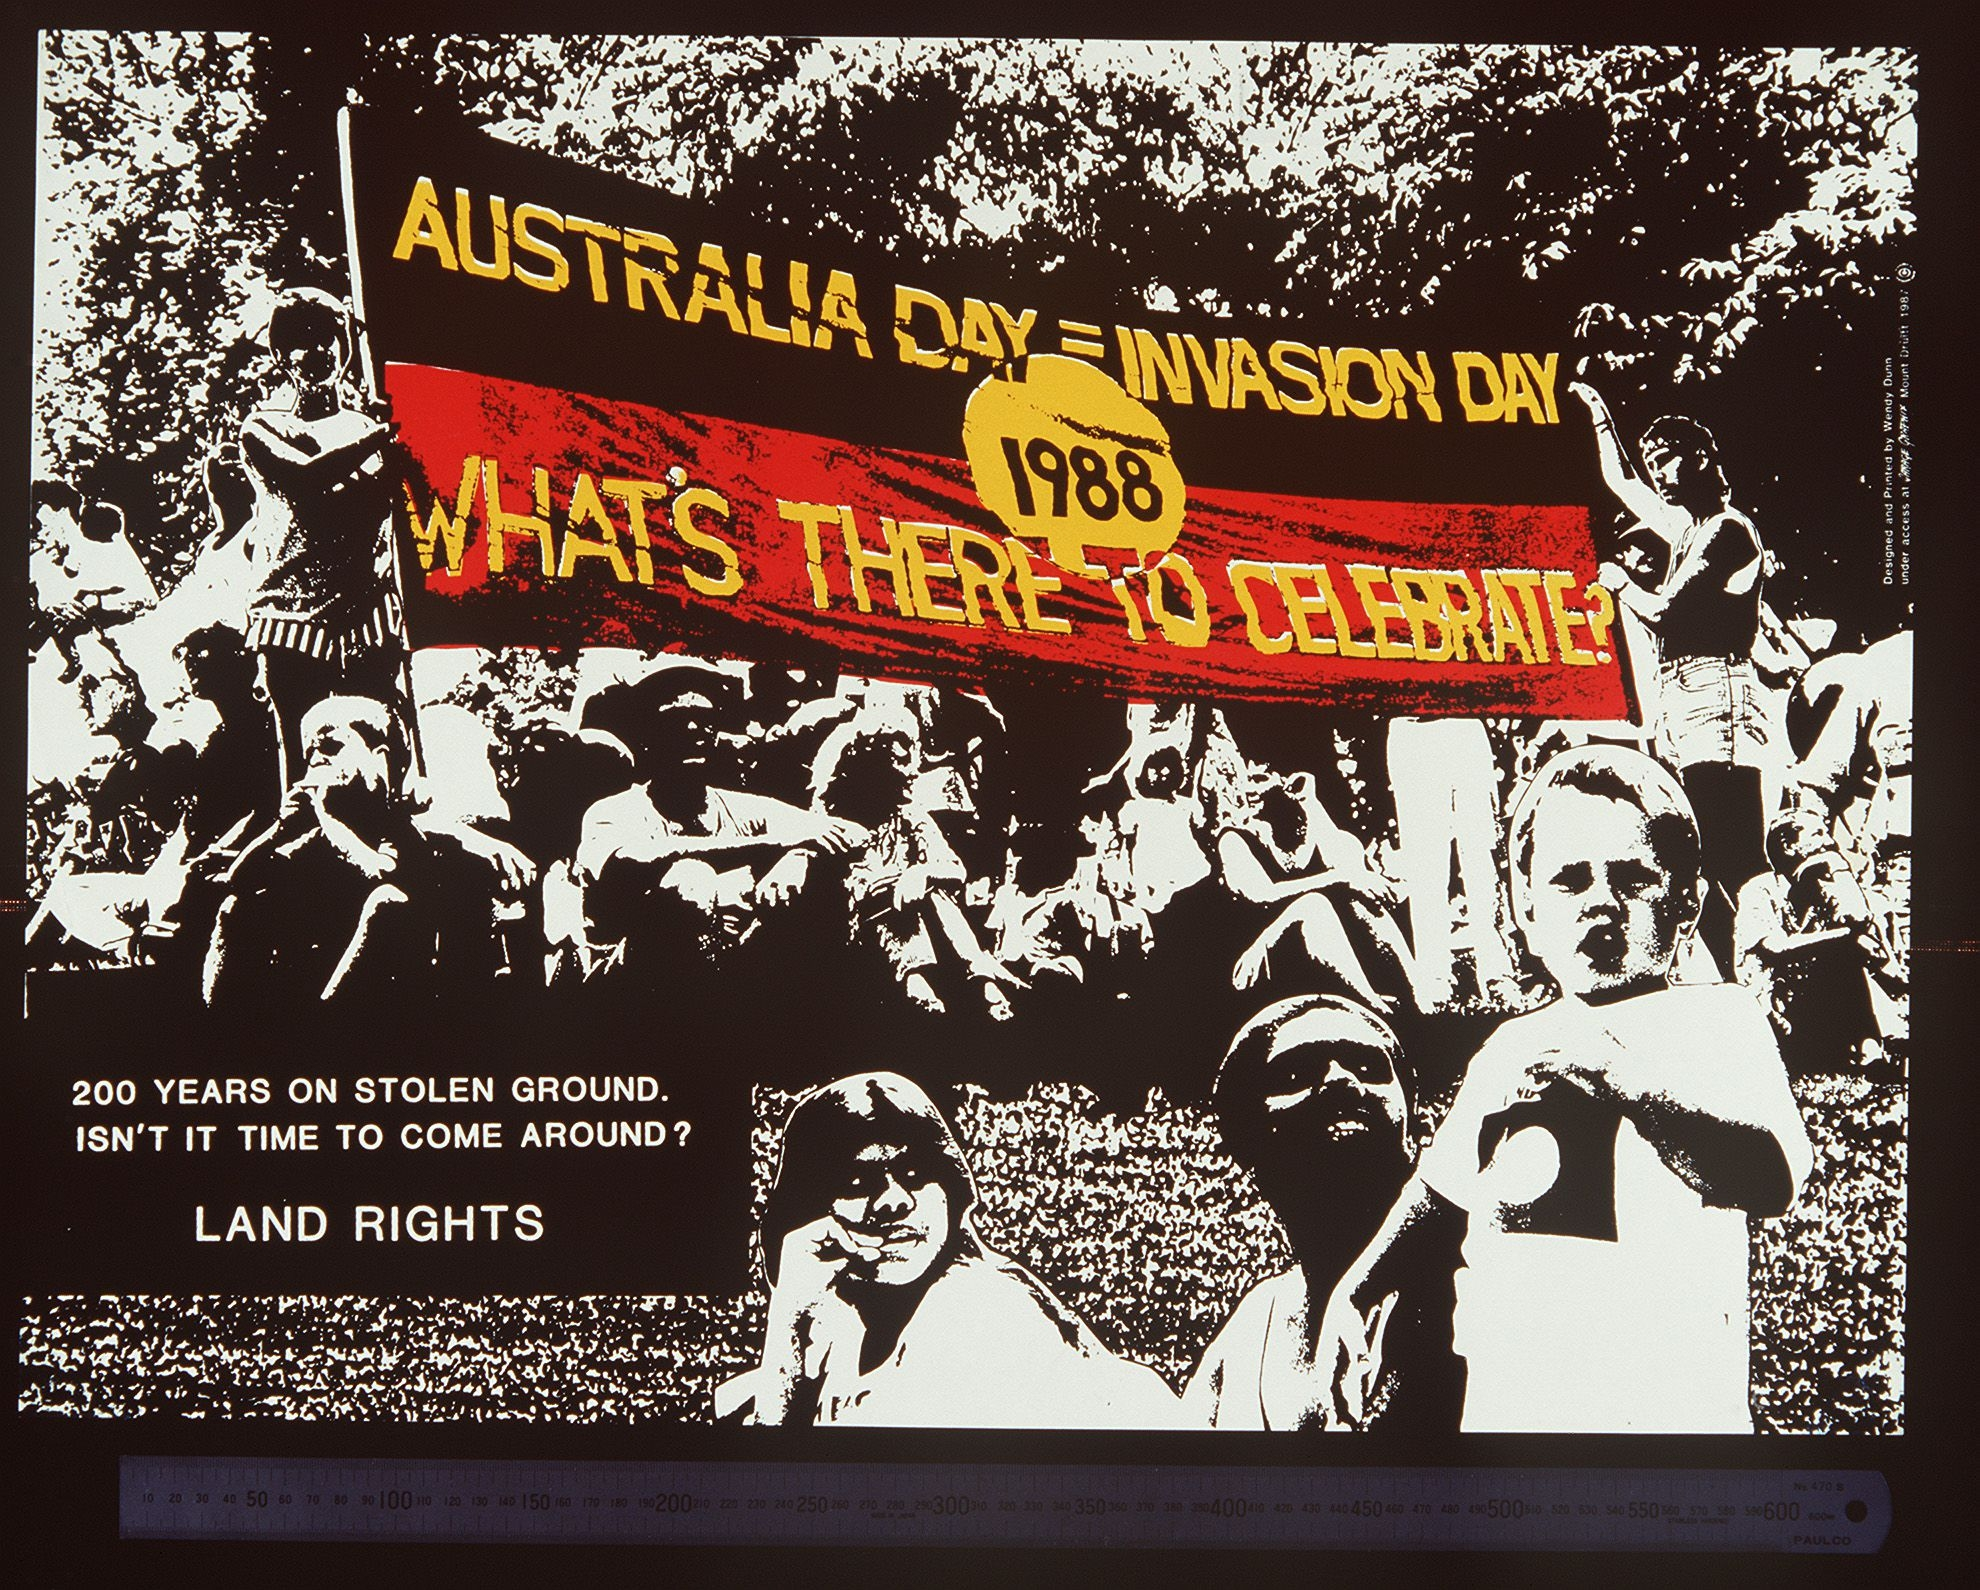 Poster about Invasion Day